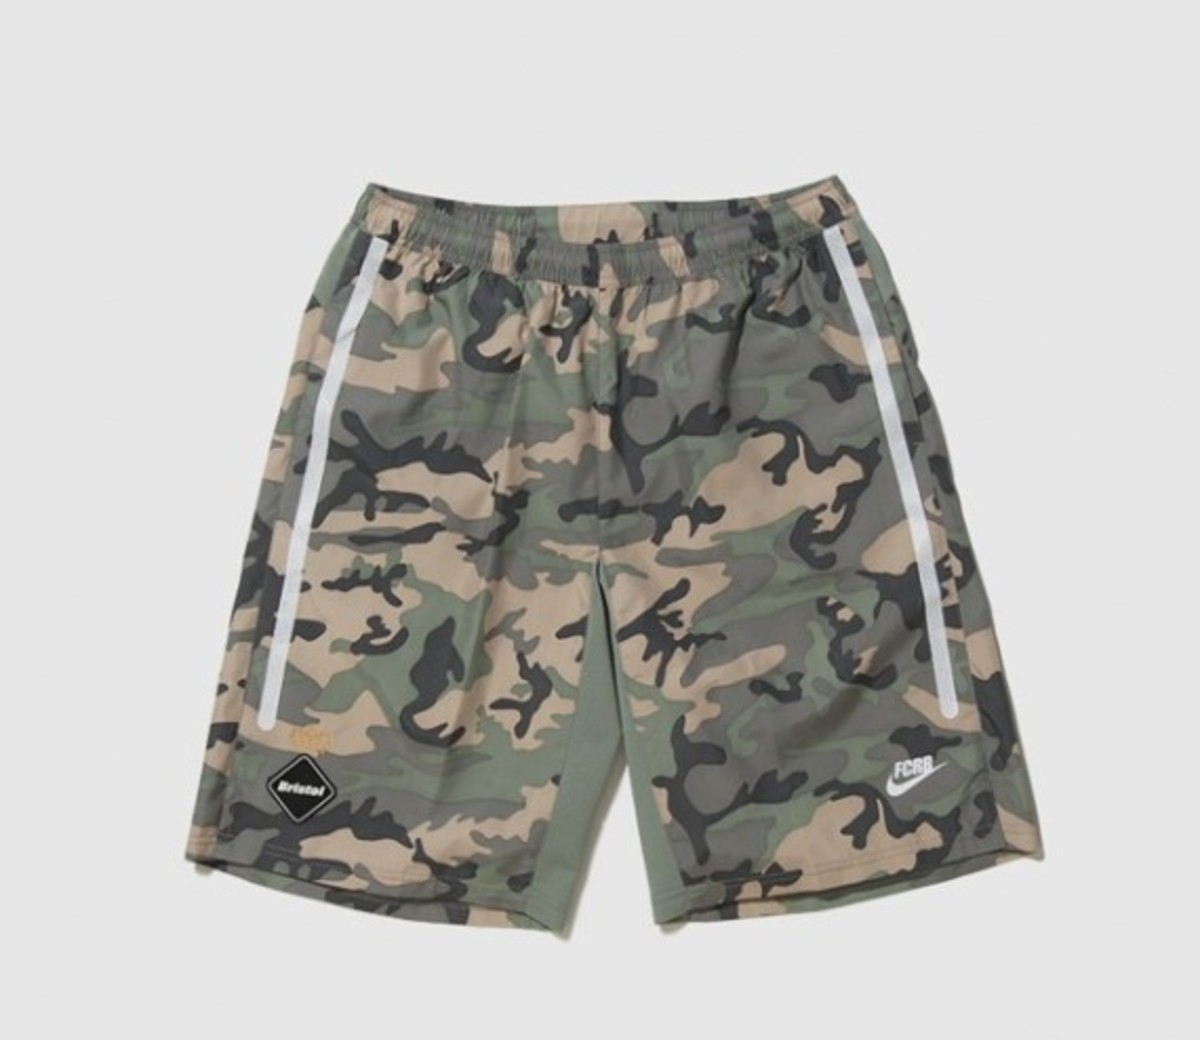 fcrb_ss10_camouflage_3